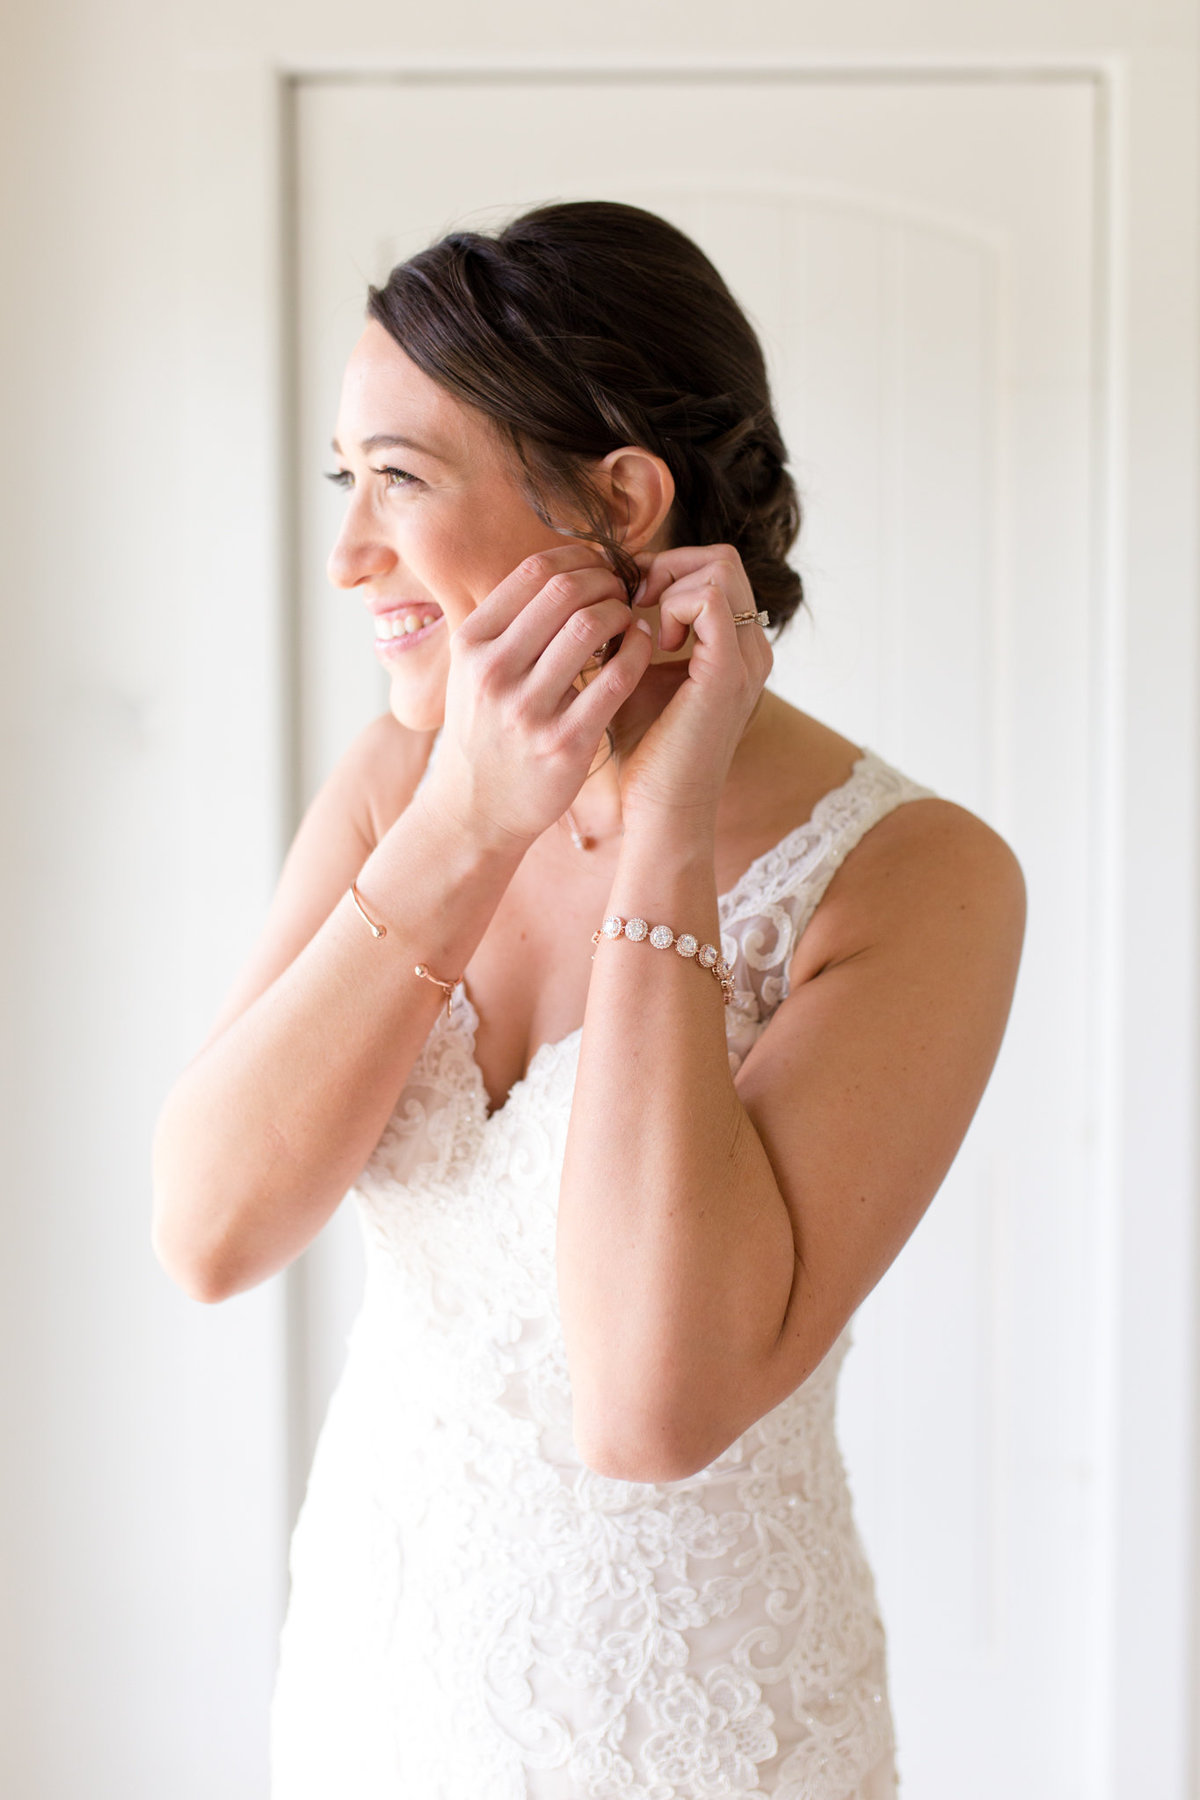 Grand Ivory Wedding| Dallas, Texas | DFW Wedding Photographer | Sami Kathryn Photography-27